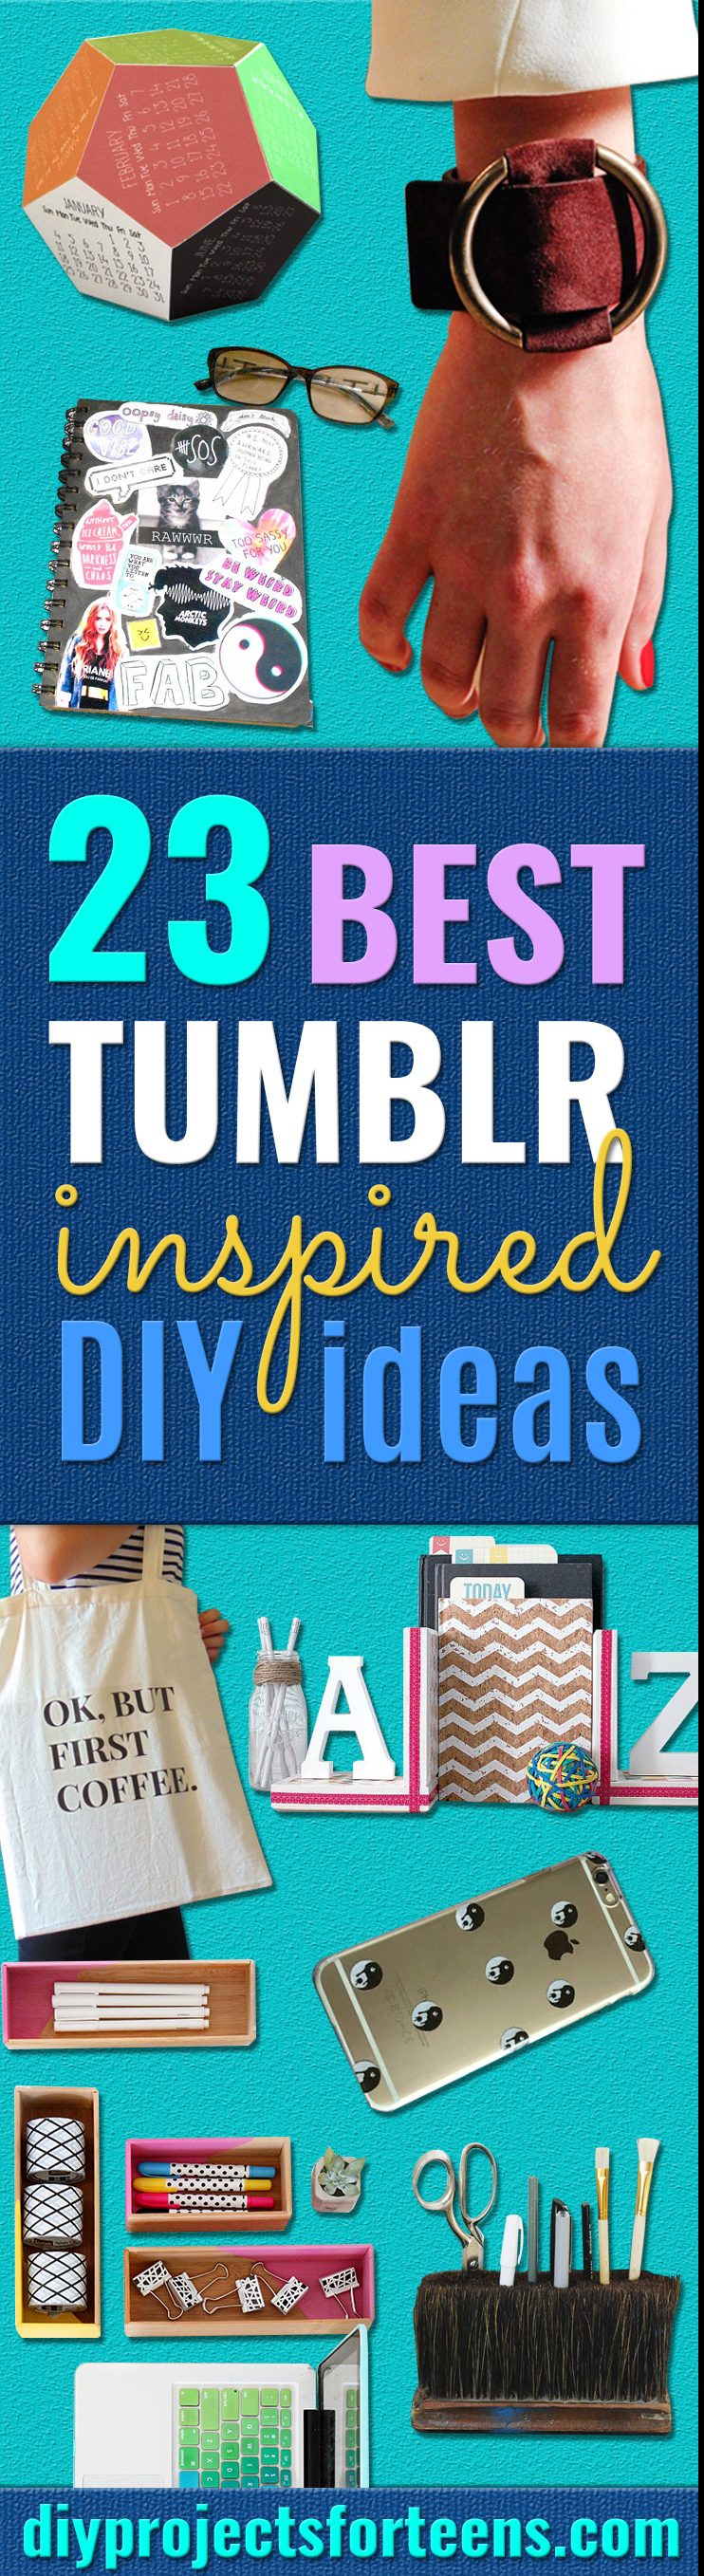 Best DIY Ideas from Tumblr - Crafts and DIY Projects Inspired by Tumblr are Perfect Room Decor for Teens and Adults - Fun Crafts and Easy DIY Gifts, Clothes and Bedroom Project Tutorials for Teenagers and Tweens